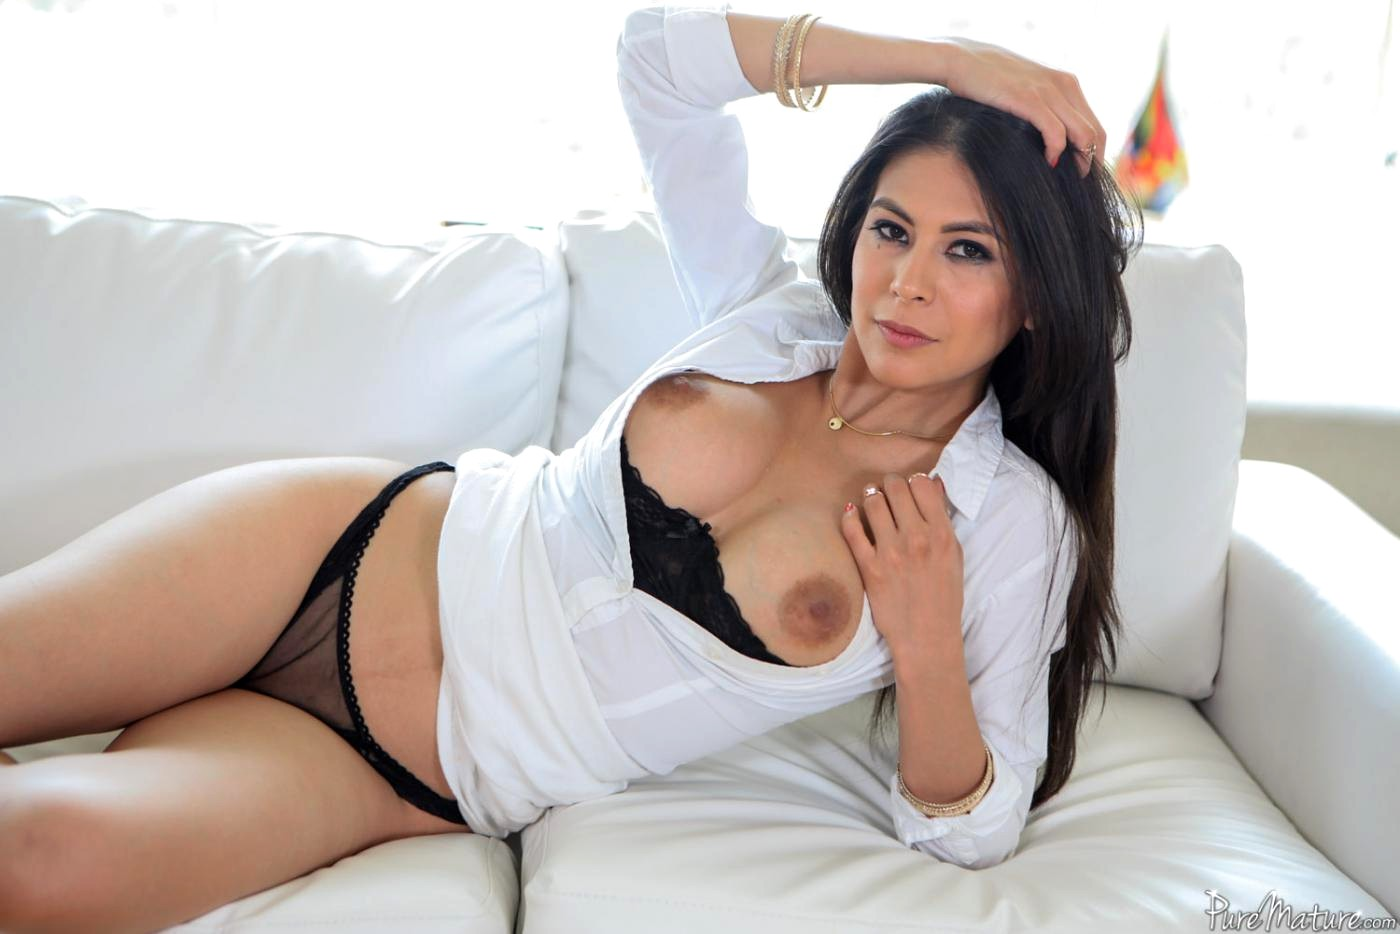 Free asian video chat-3937